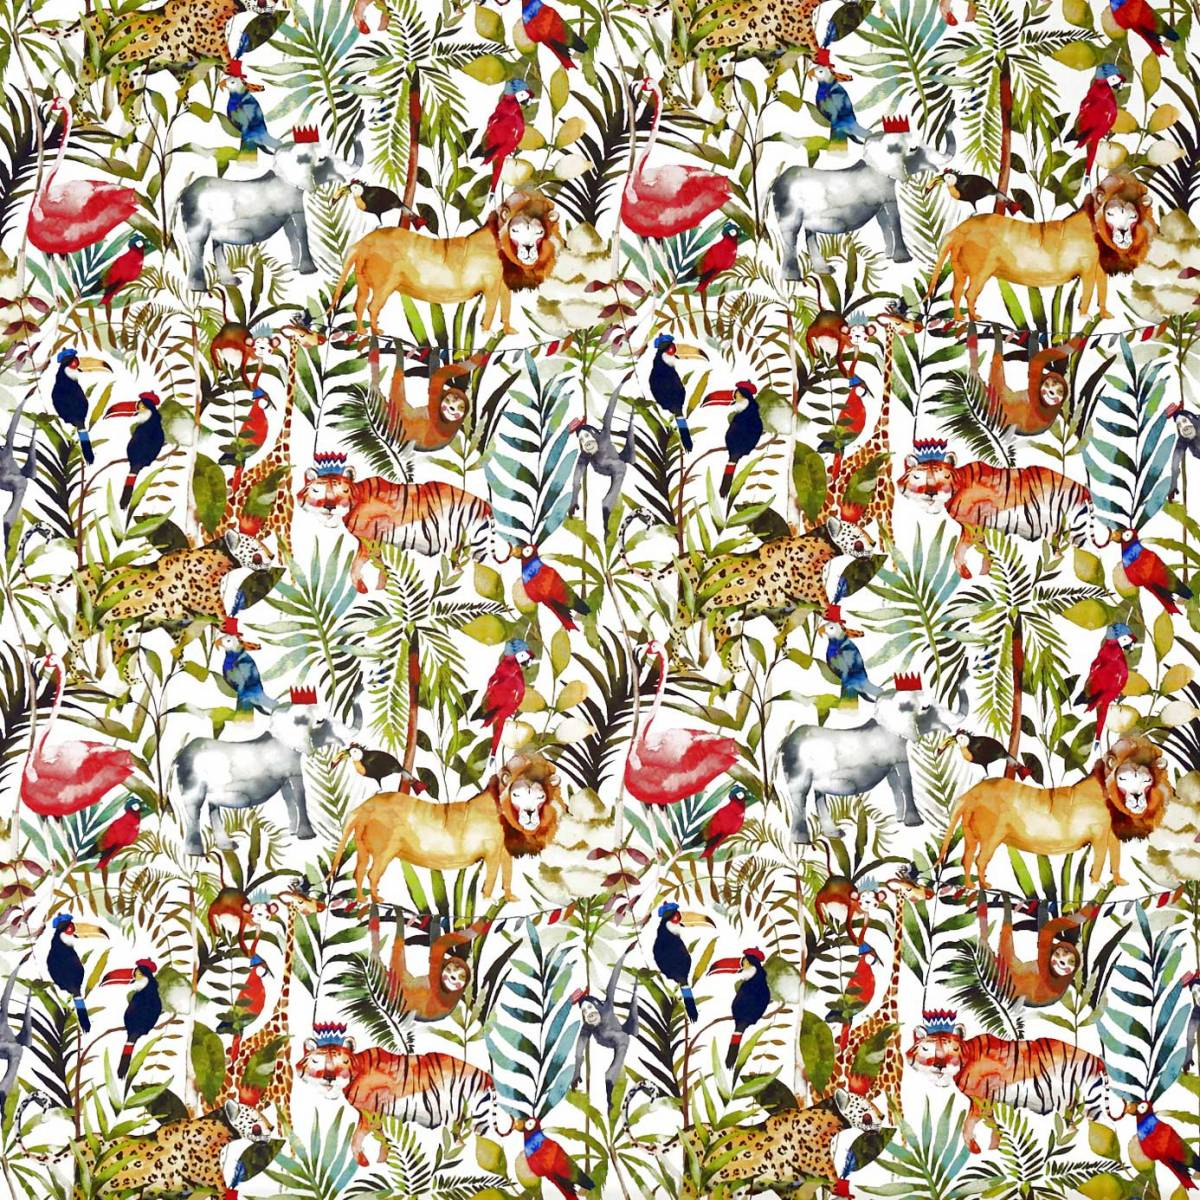 King Of The Jungle Fabric Safari 8630 677